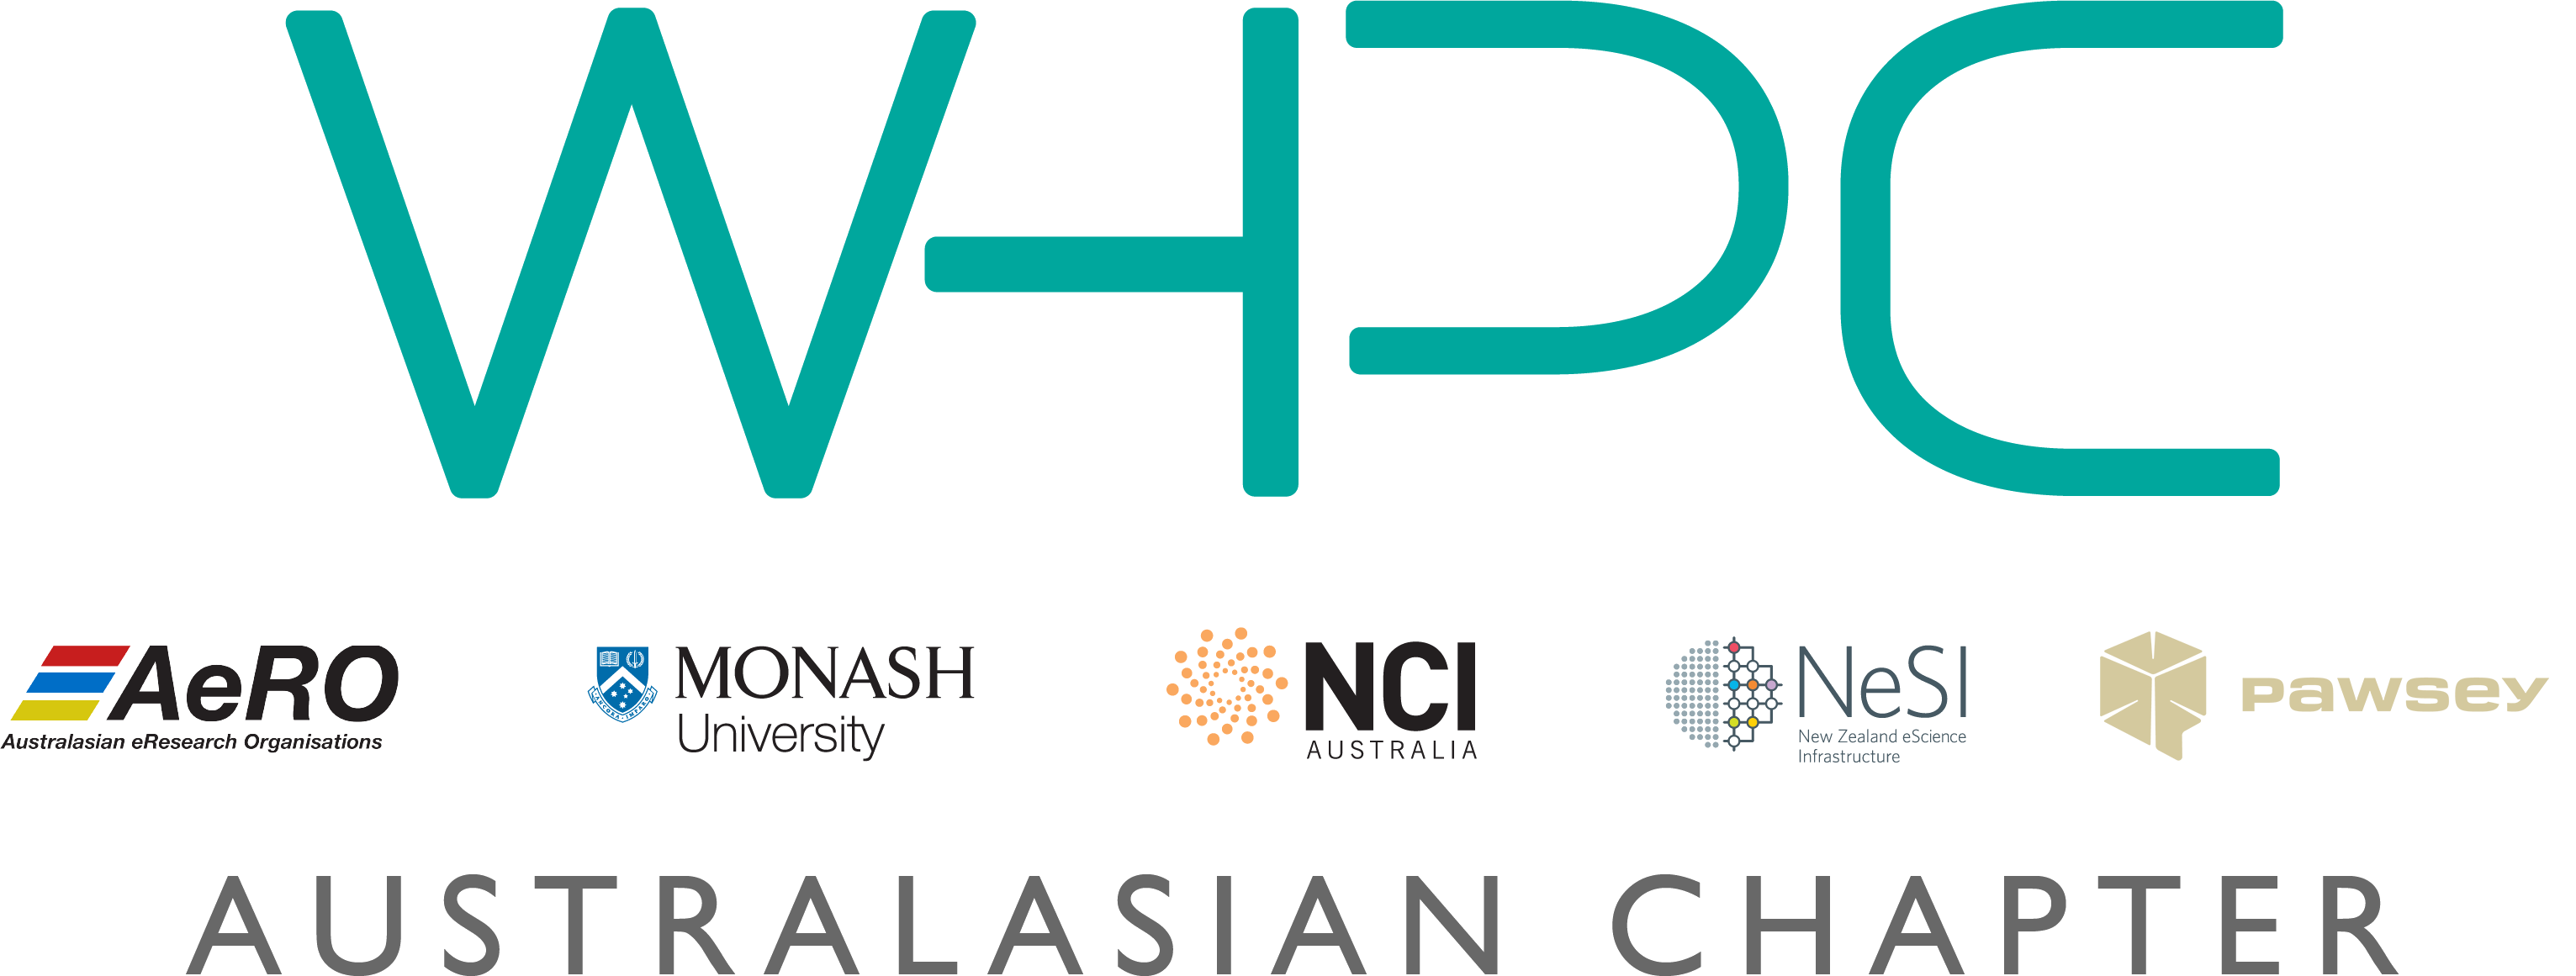 WHPCAusNZ logo - the letters WHPC with the logos of the founding organisations featured below - NeSI, Pawsey, NCI, AeRO, Monash